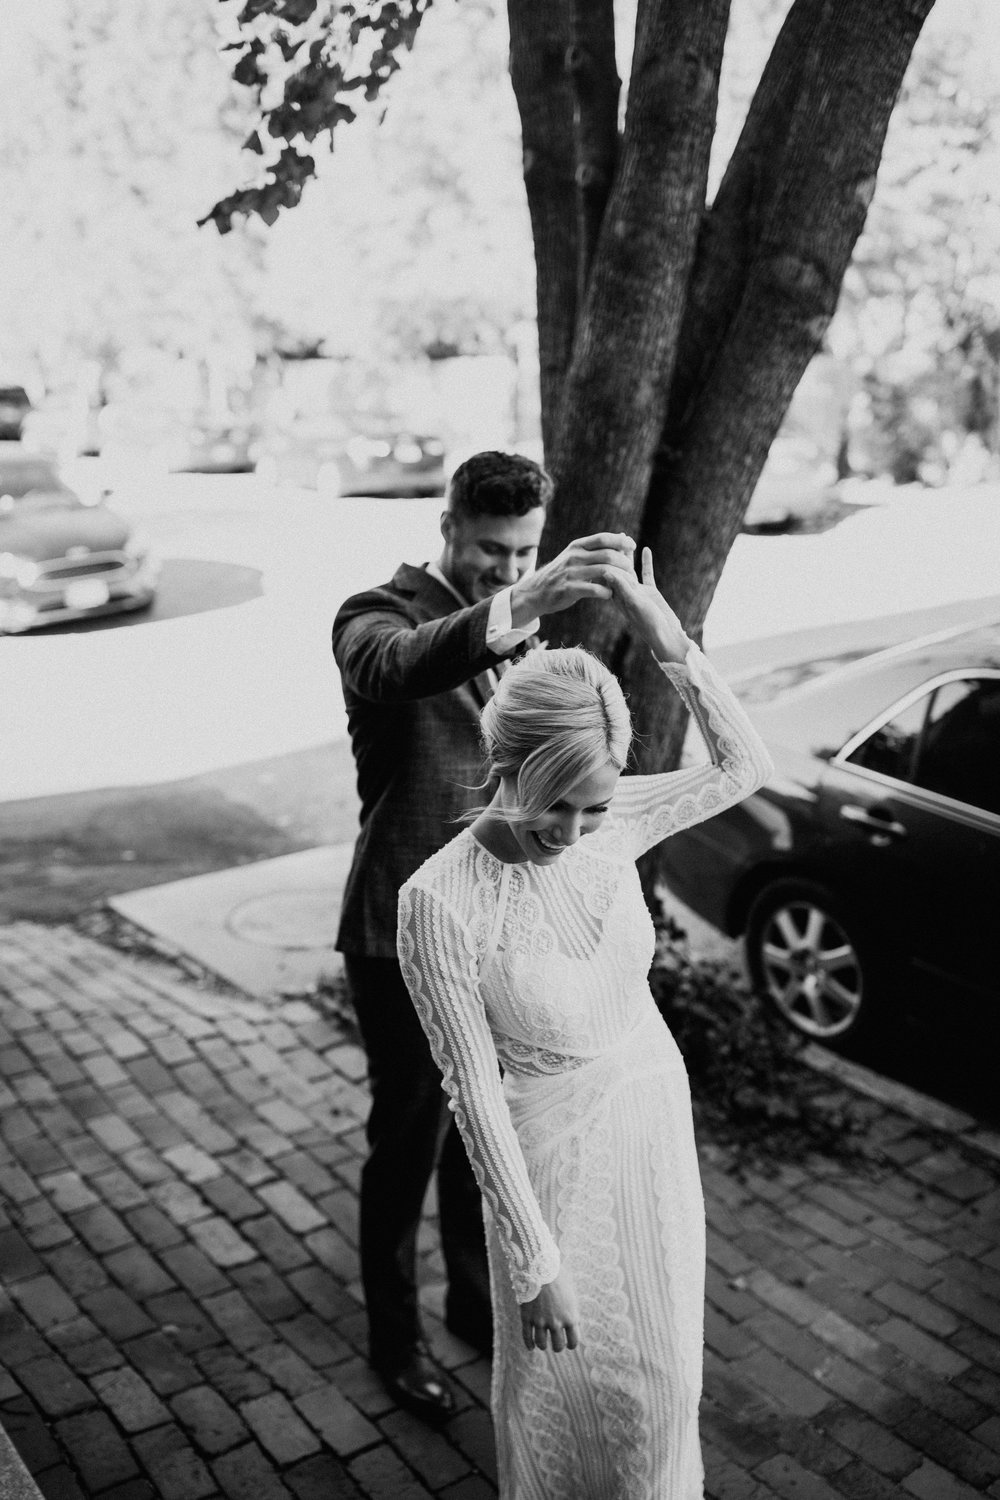 ST_LOUIS_WEDDING_PHOTOGRAPHER_WILD_CARROT_EMILY_AND_JOES_WINTER_WEDDING-244.jpg